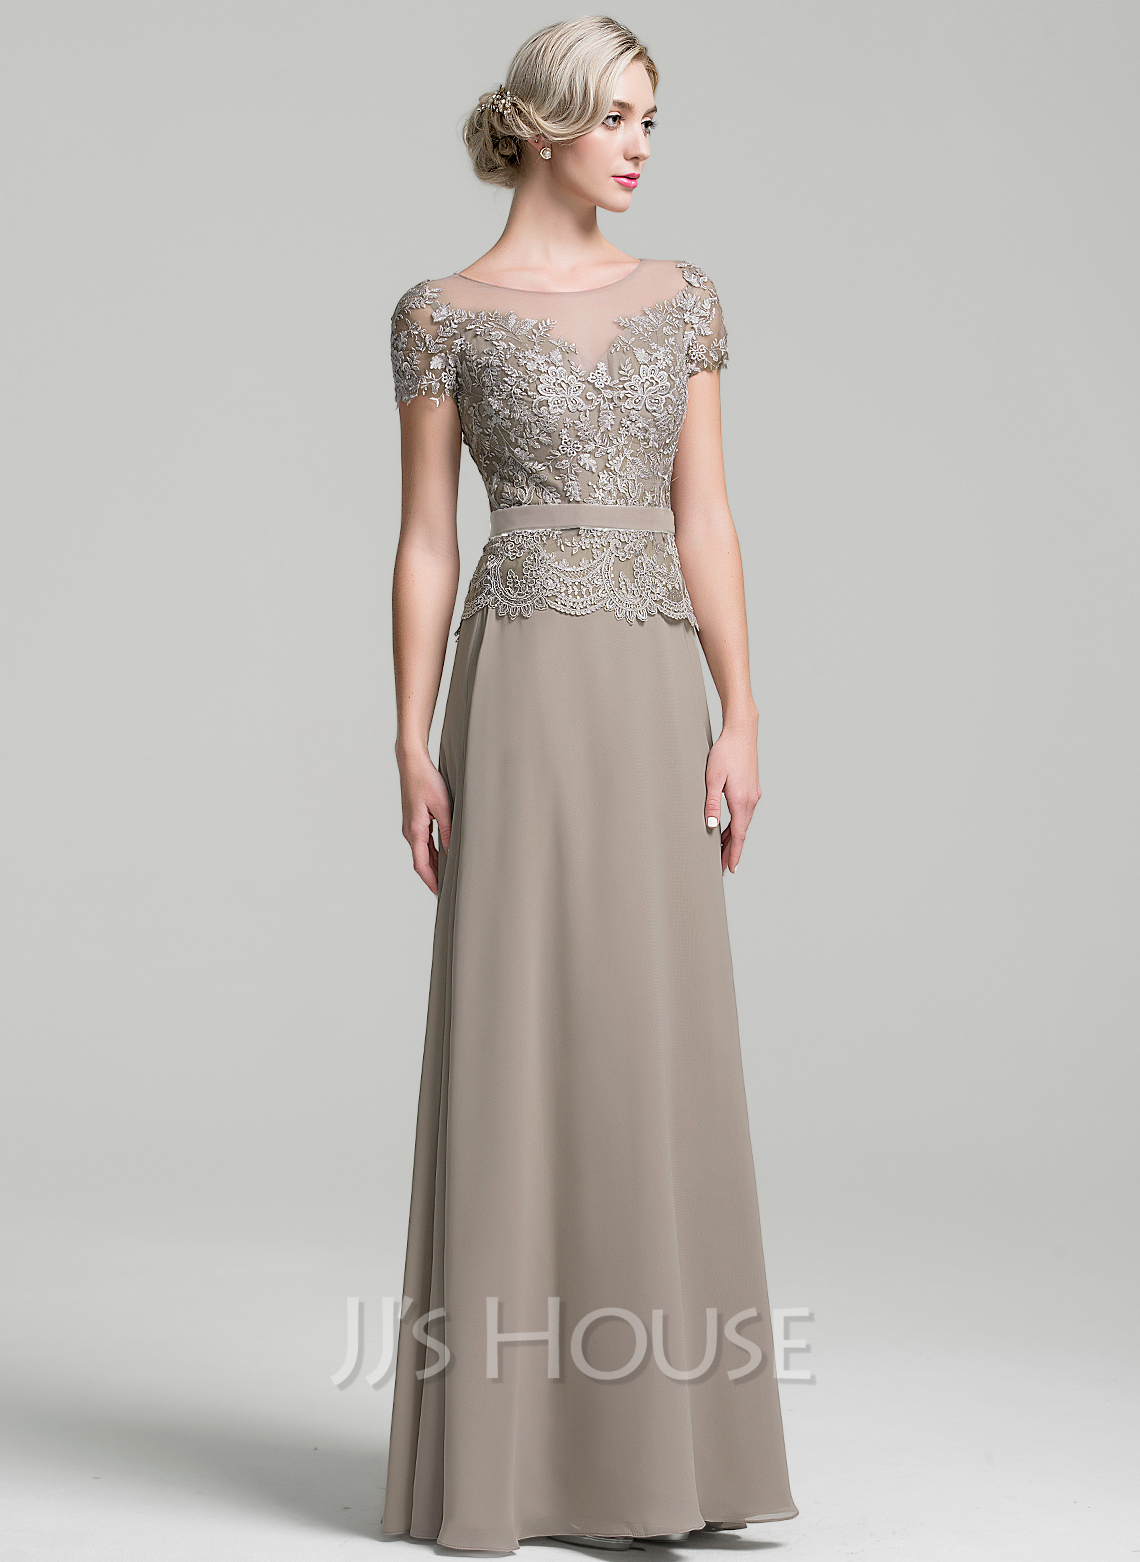 3f22312c04e Scoop Neck Floor-Length Chiffon Mother of the Bride Dress (267196466 ...